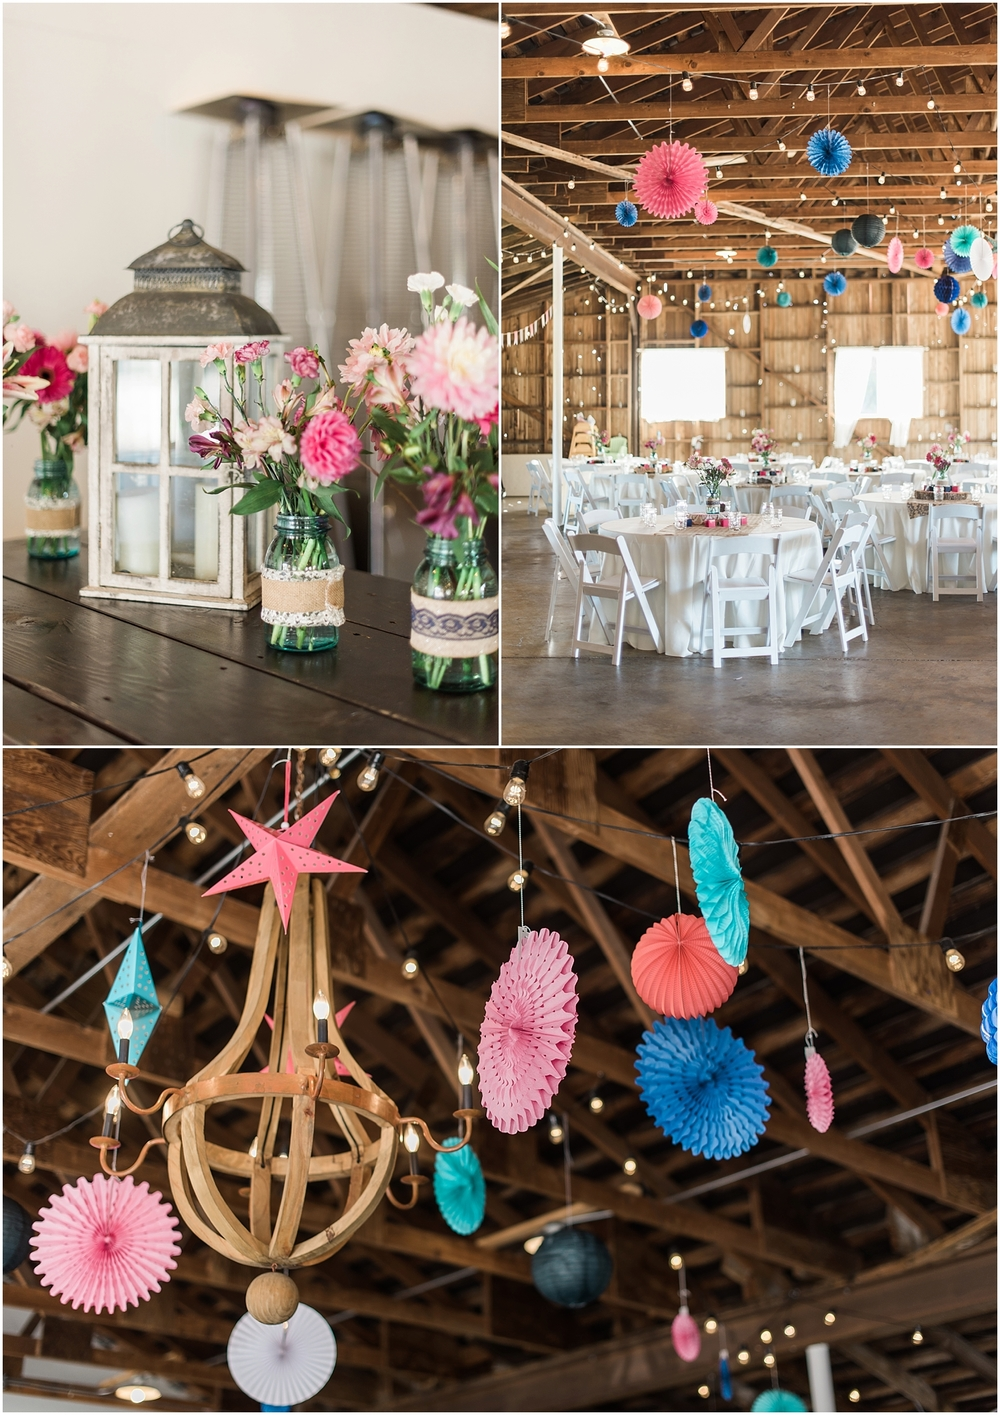 Maplehurst farm wedding. Snohomish WEdding Photographer. Rustic Chic Farmhouse Wedding. Polka dots, burlap, lace, bunny cake topper, high tops, Elizabeth marie makeup, chandelier,  DIy, vintage, unique, navy, pink, turquoise.